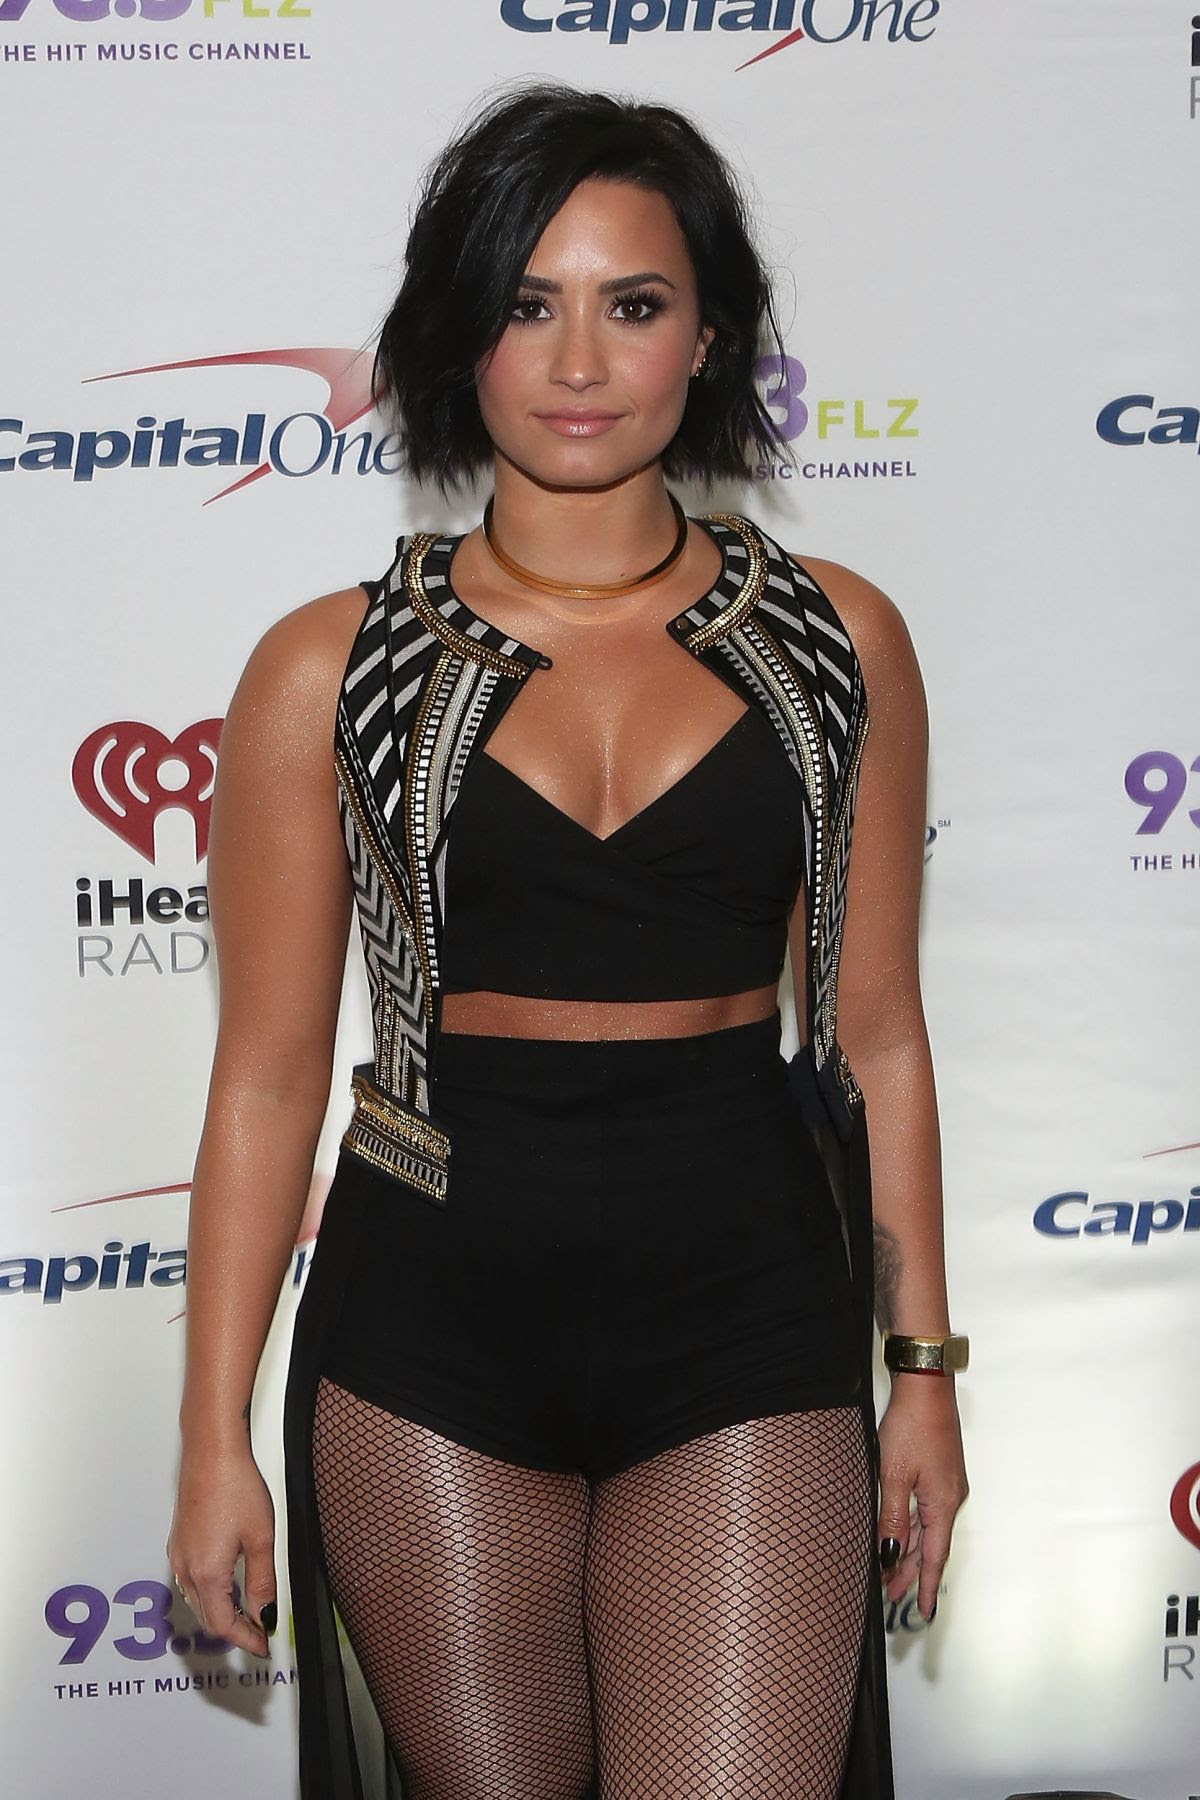 DEMI LOVATO at 93.3 FLZ